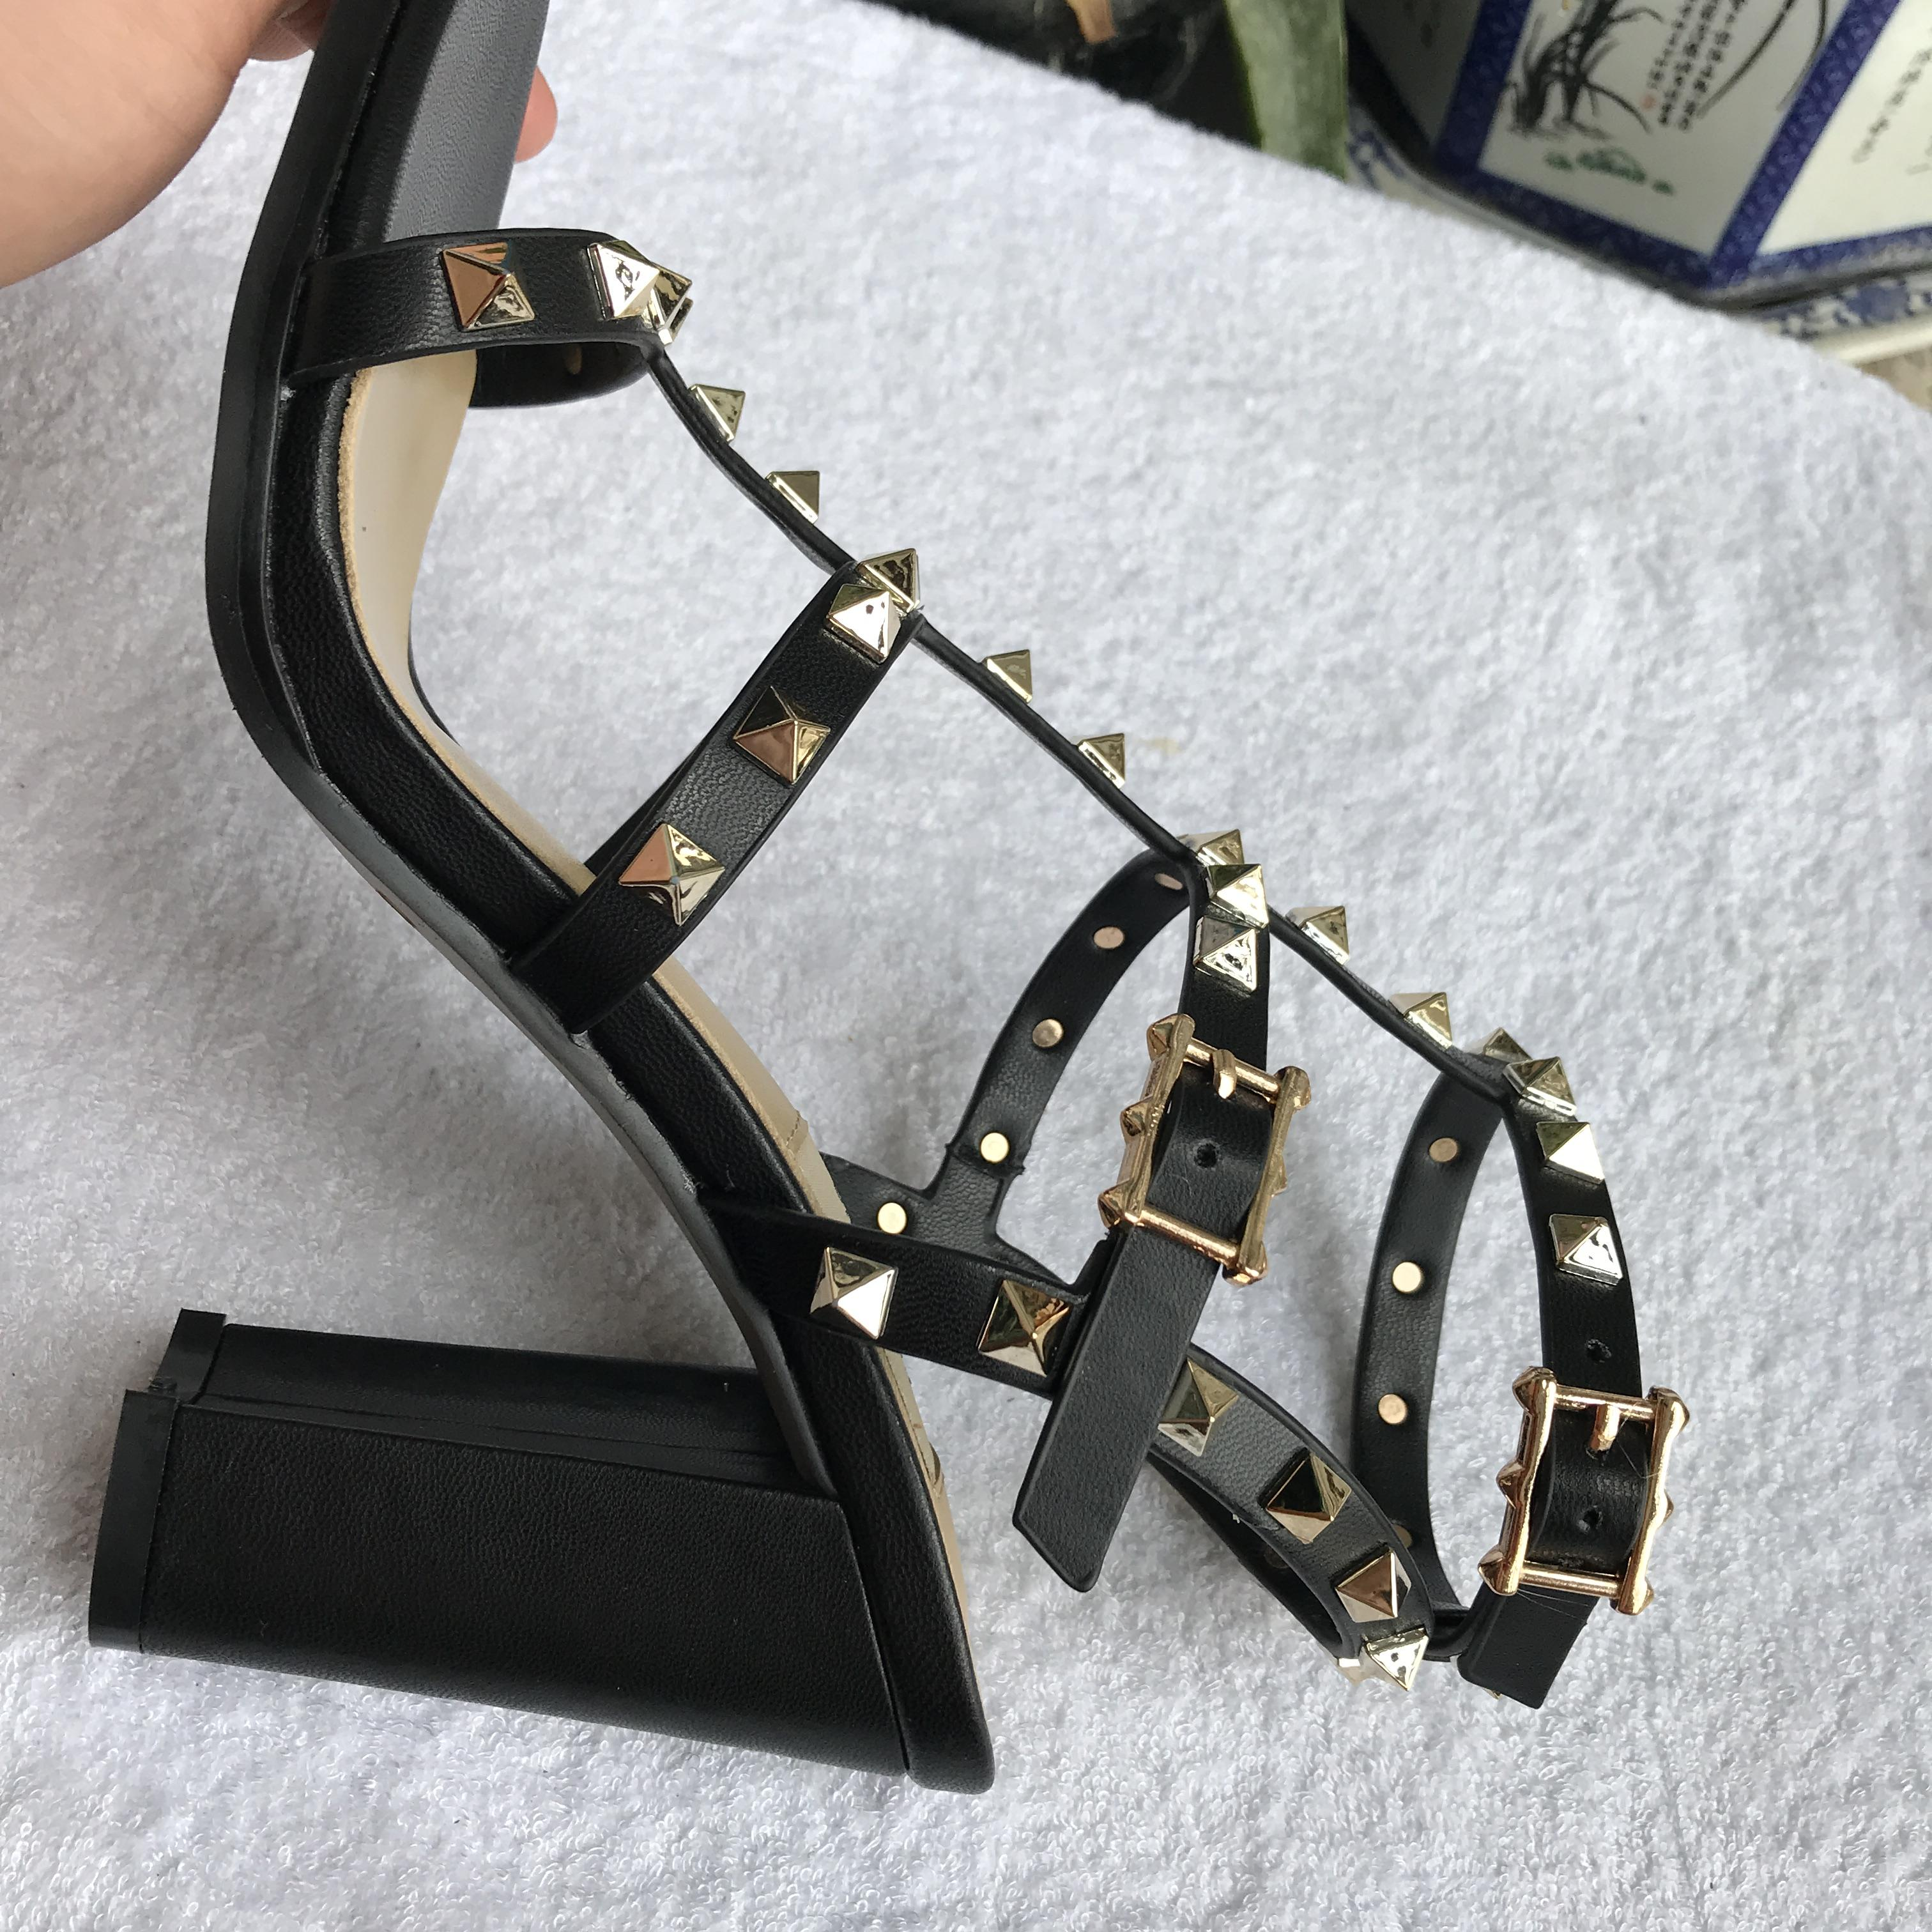 Hot Sale-new European women's rivets sandals with 9.5 cm high rivets fashion sandals 6 color sizes 35-41 with full packing